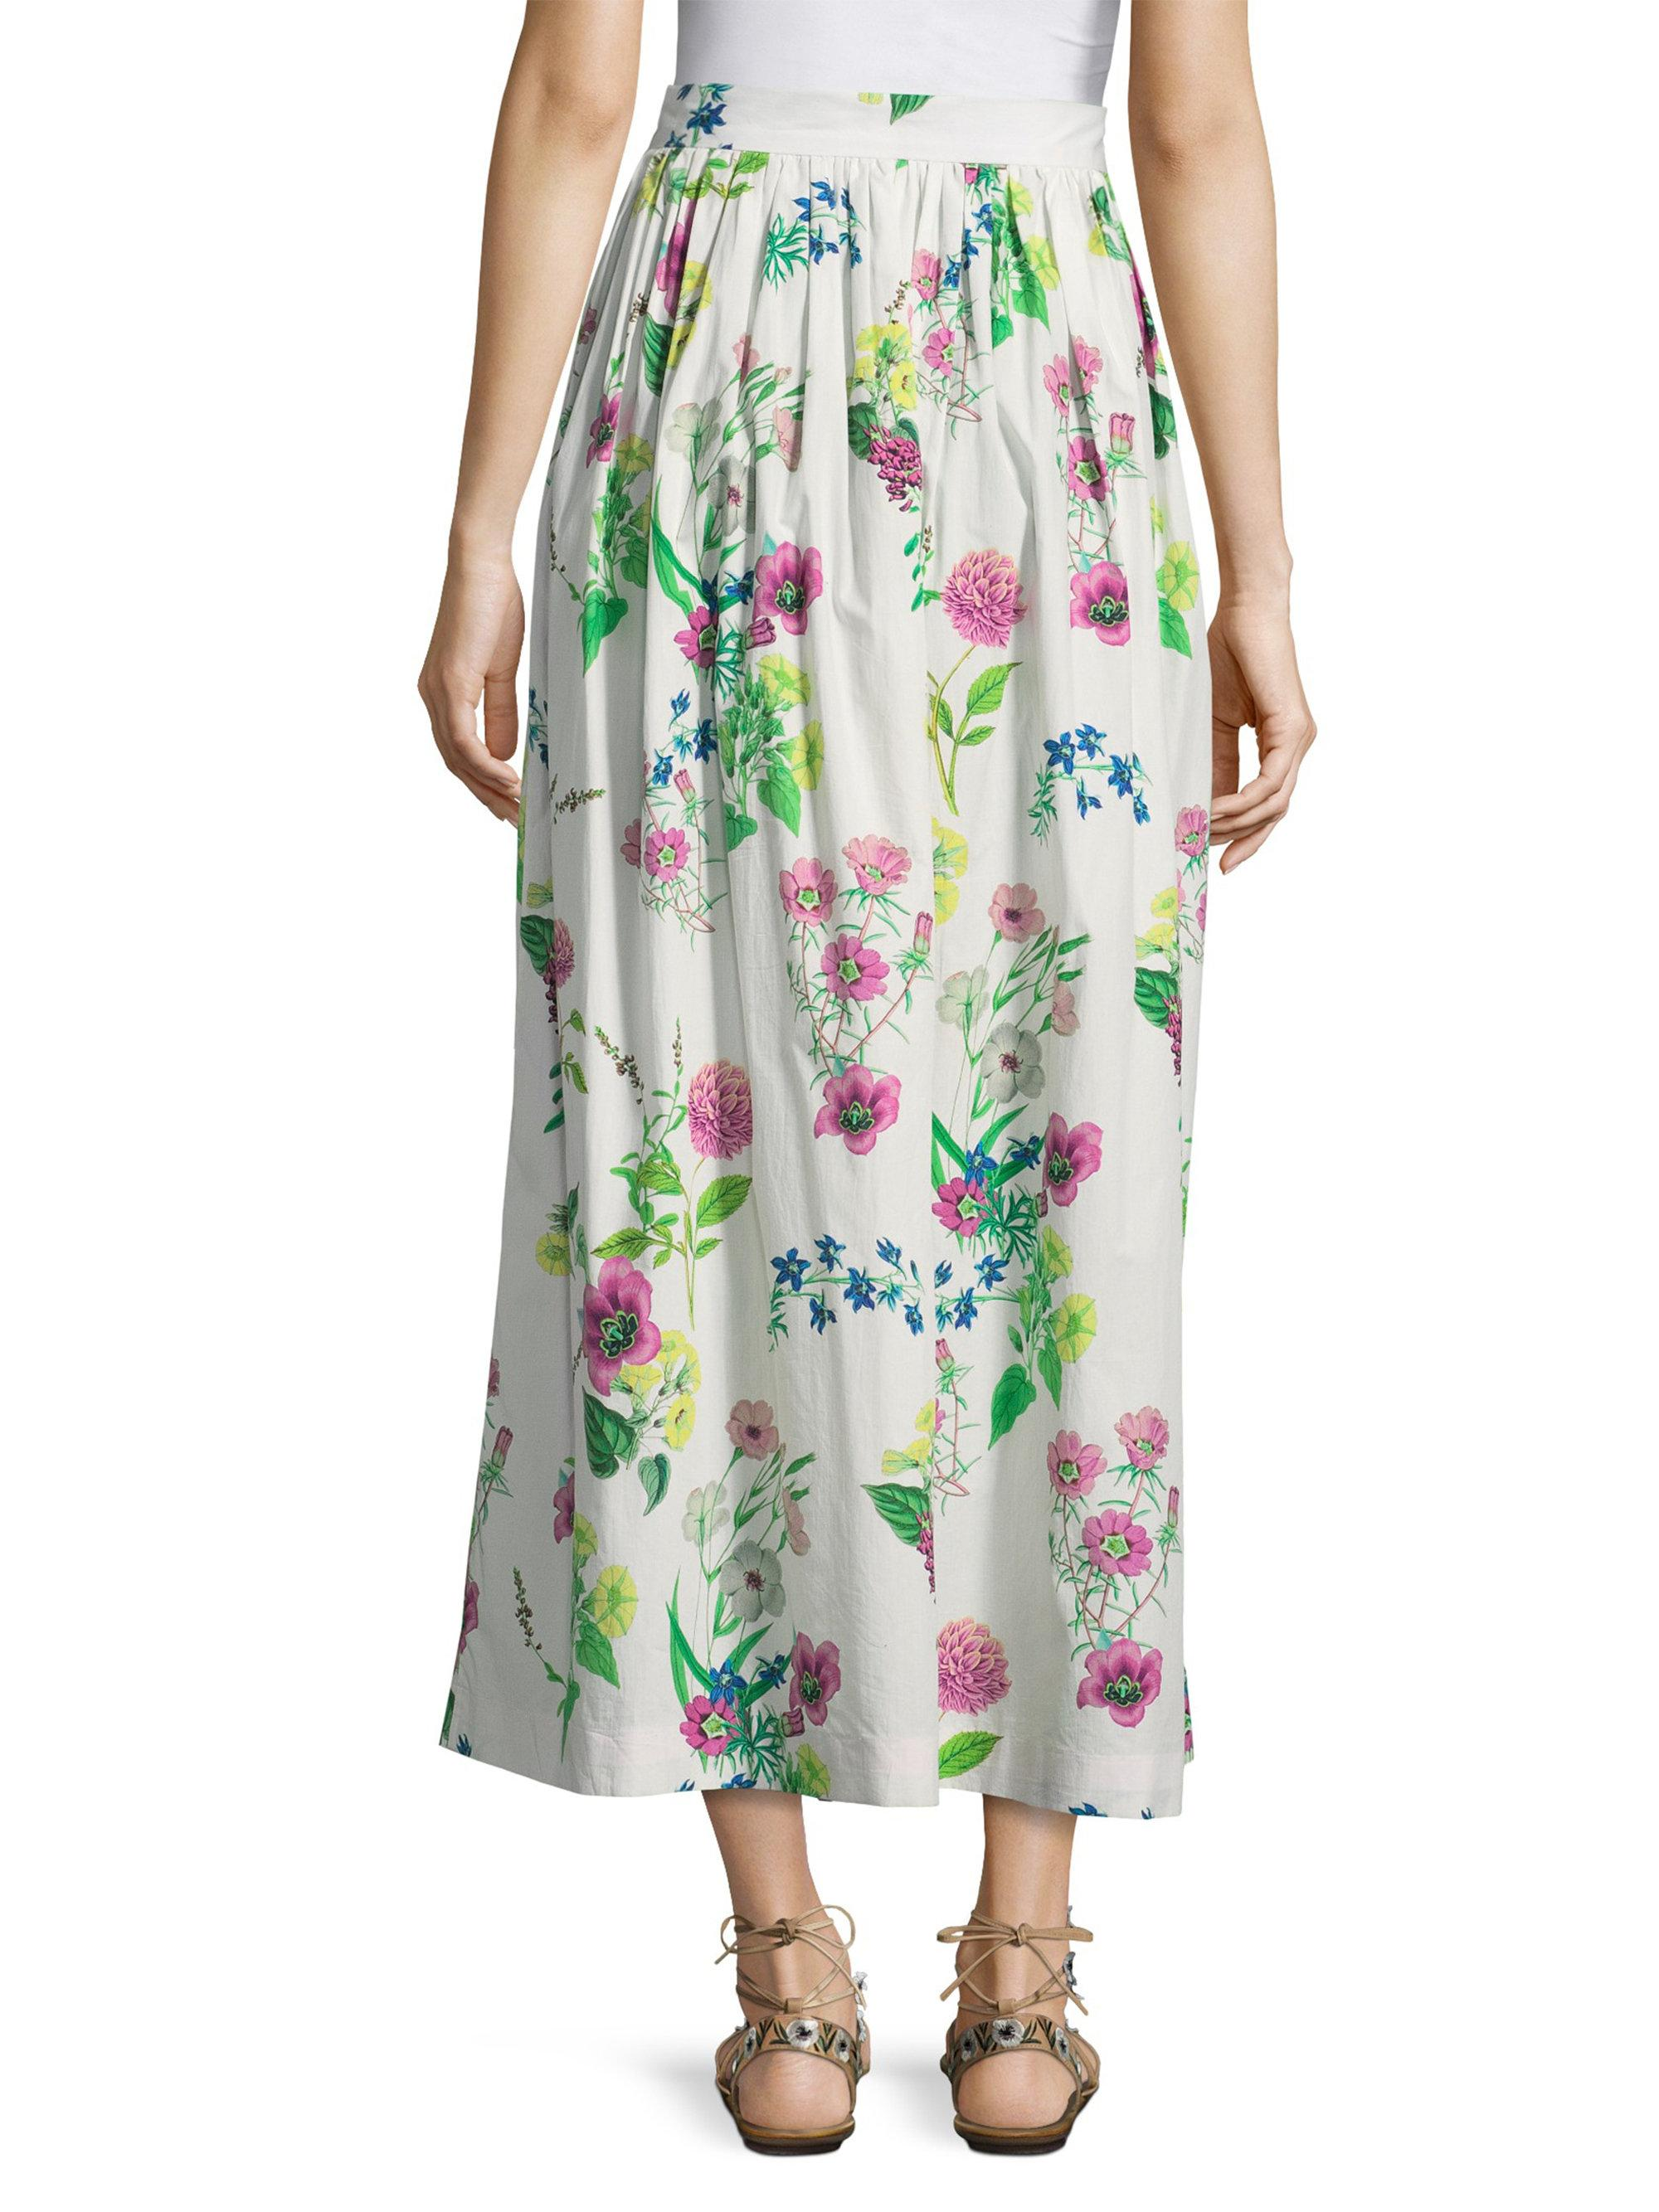 c019aec48a2732 Lyst - MDS Stripes Floral Maxi Skirt in Green